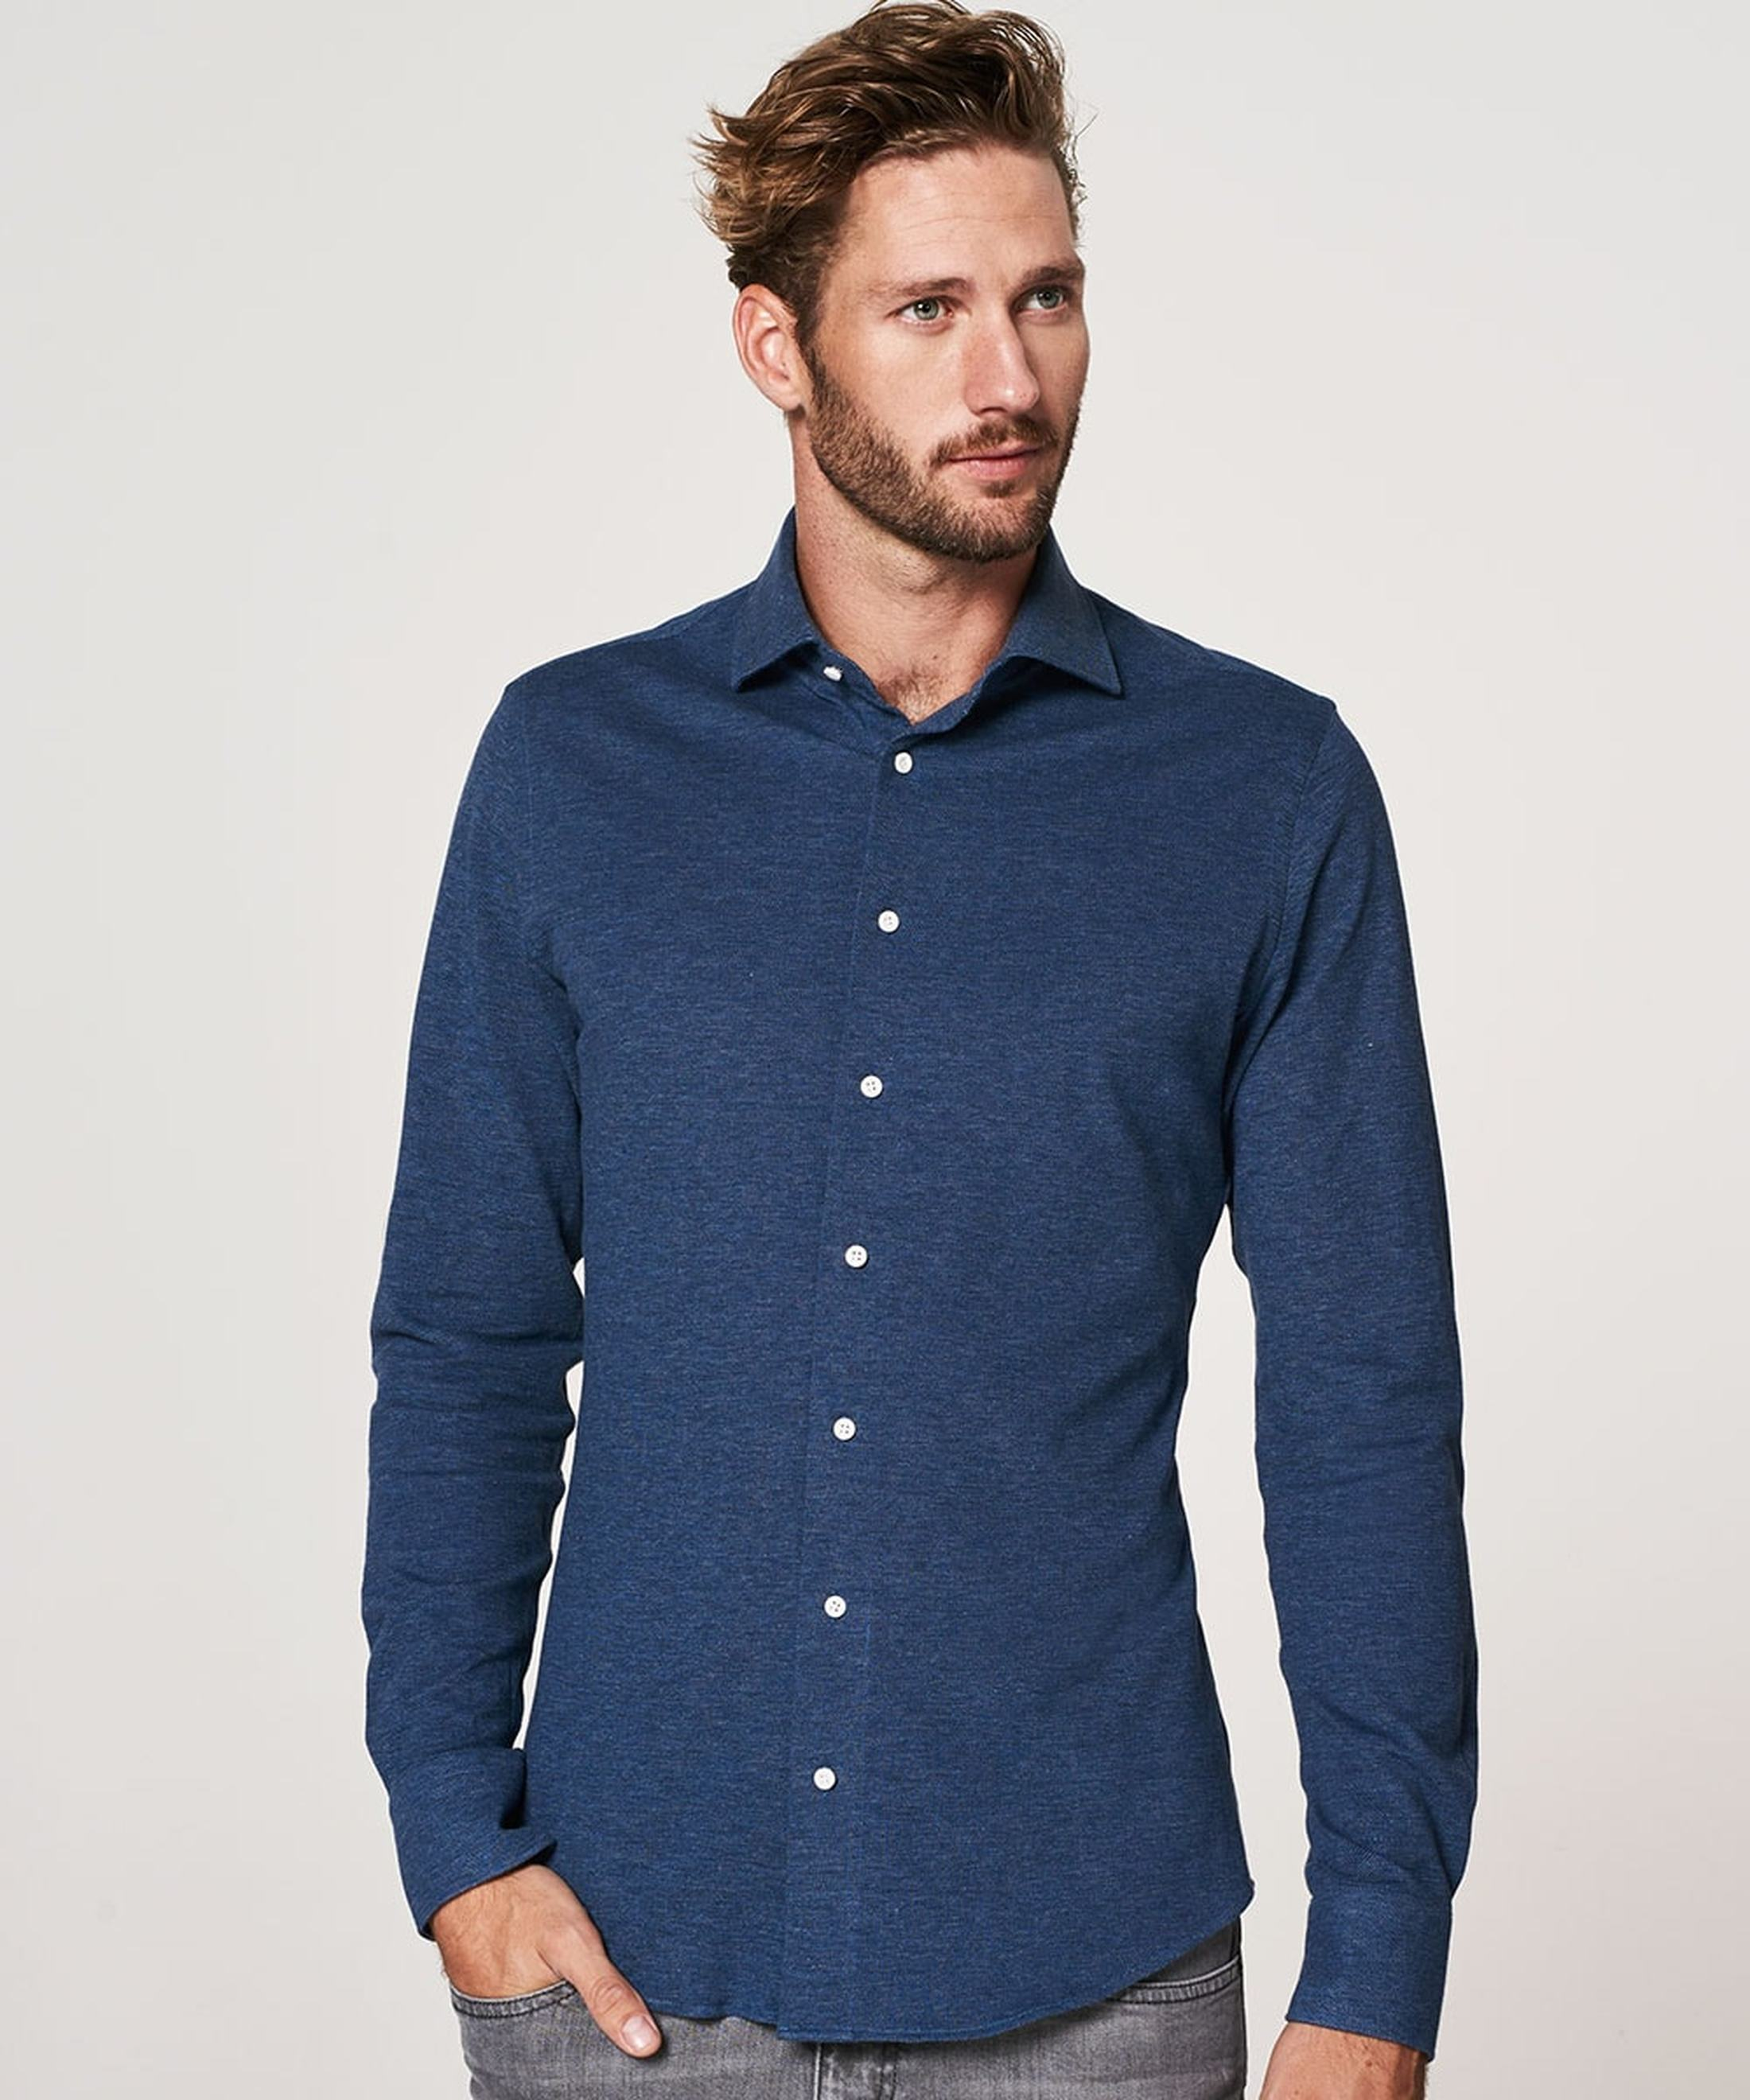 Profuomo Shirt Knitted Slim Fit Indigo Blue foto 4